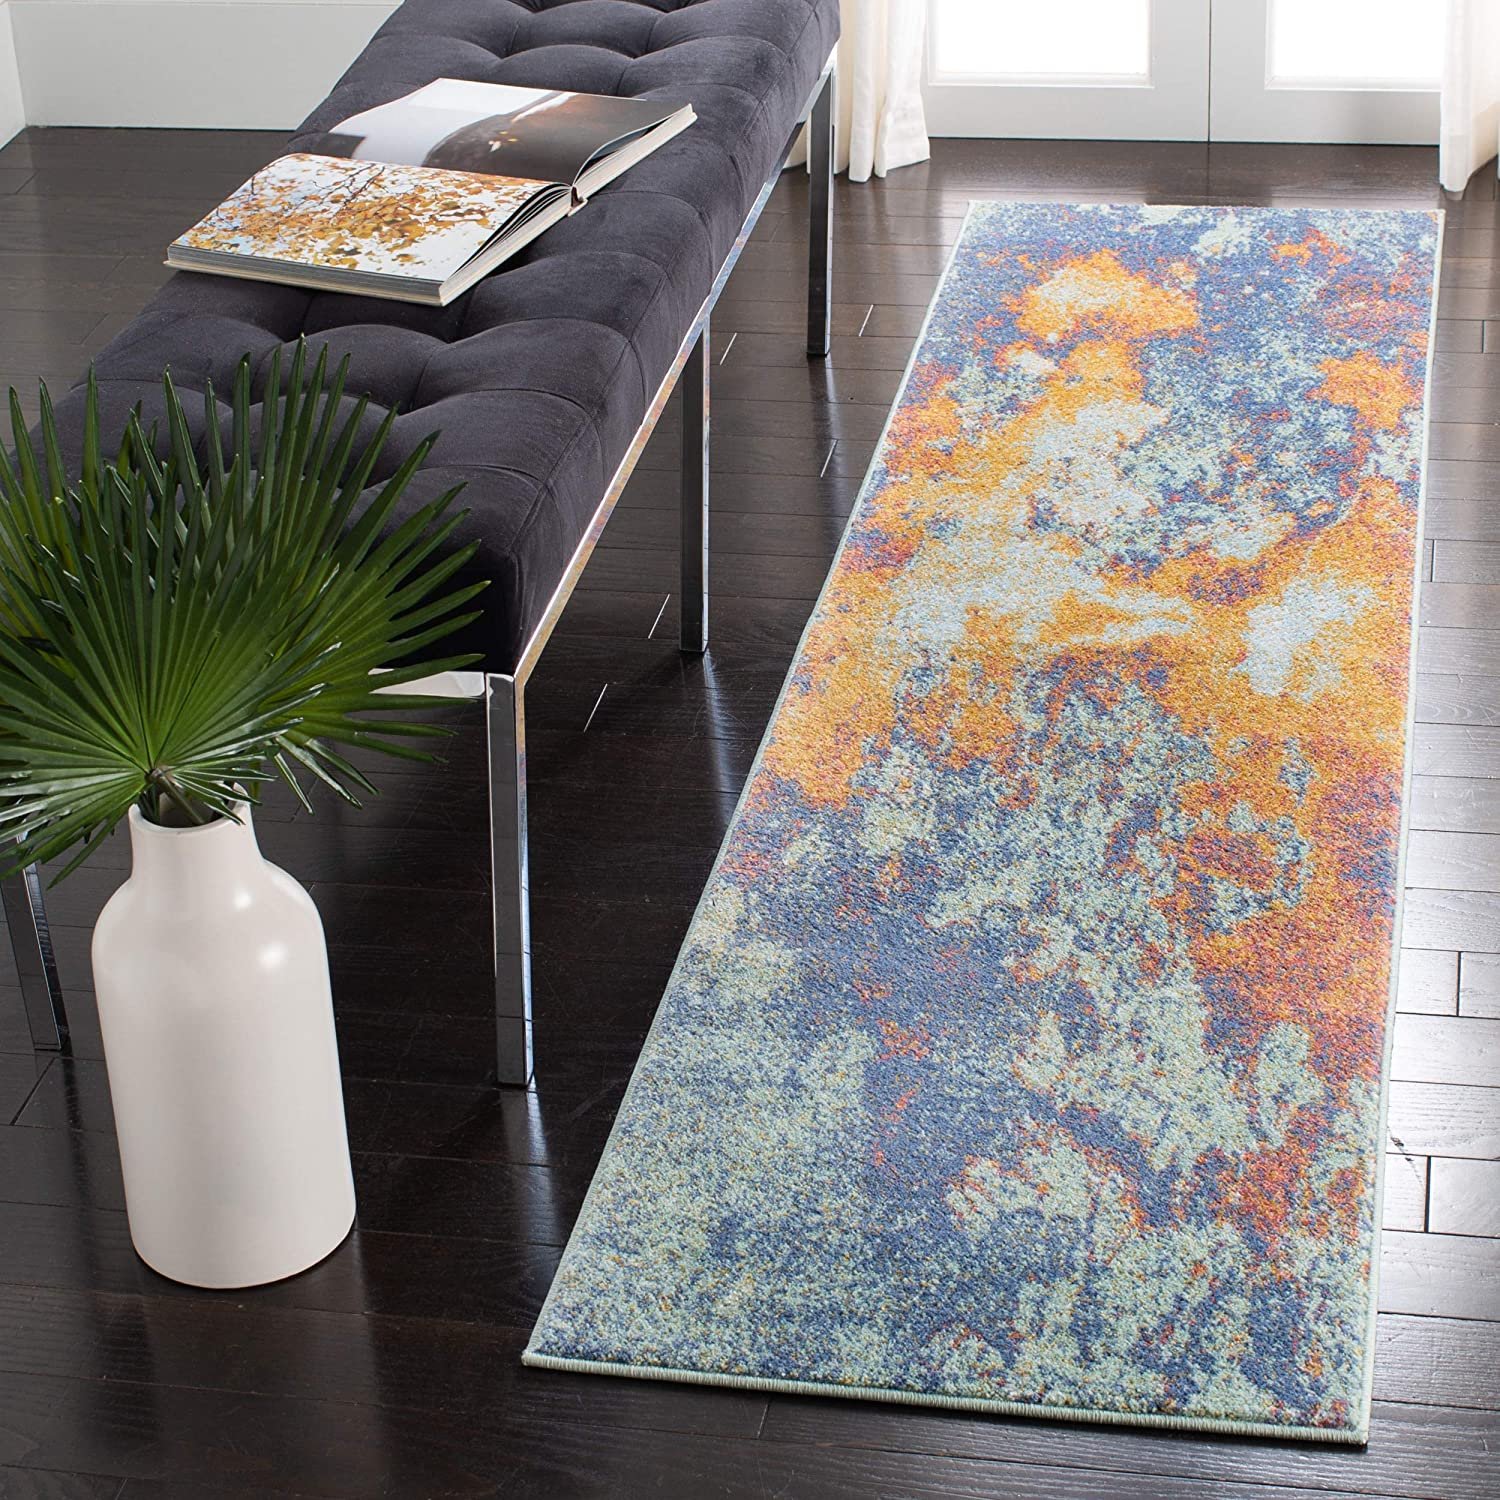 Safavieh Prism Collection PSM533A Modern Non-Shedd 25% OFF Challenge the lowest price of Japan ☆ Boho Abstract